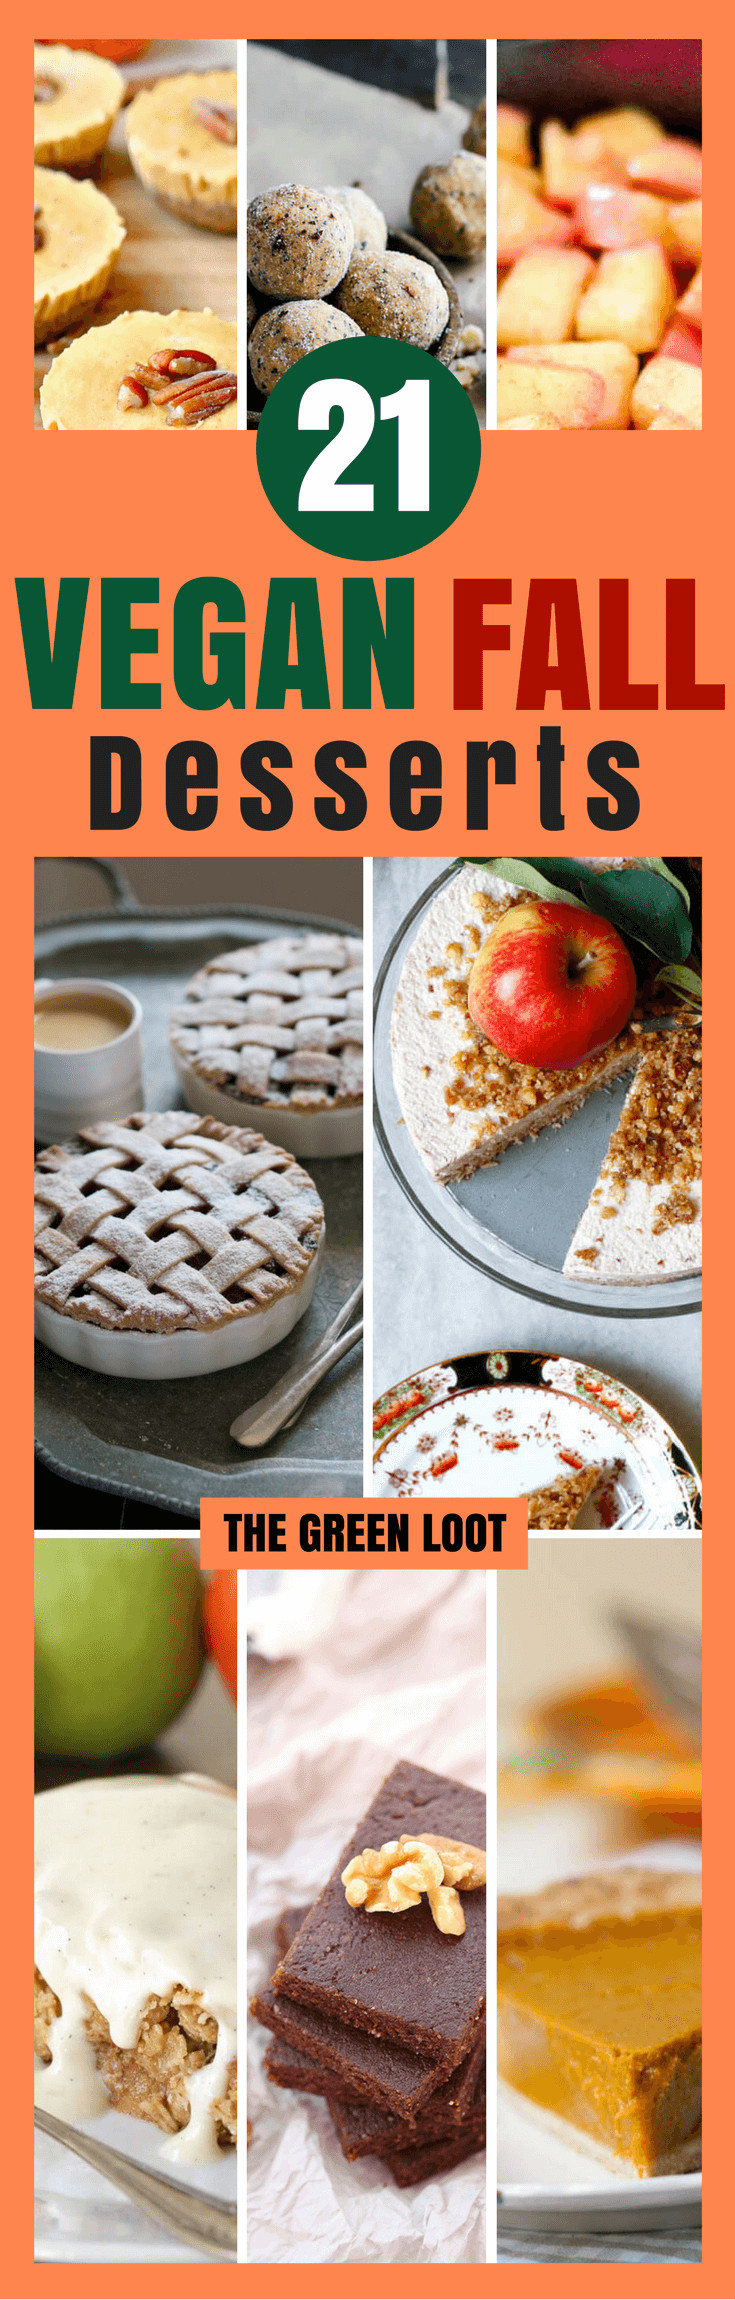 Vegan Fall Desserts  21 Super Yummy Vegan Fall Desserts You Have to Make